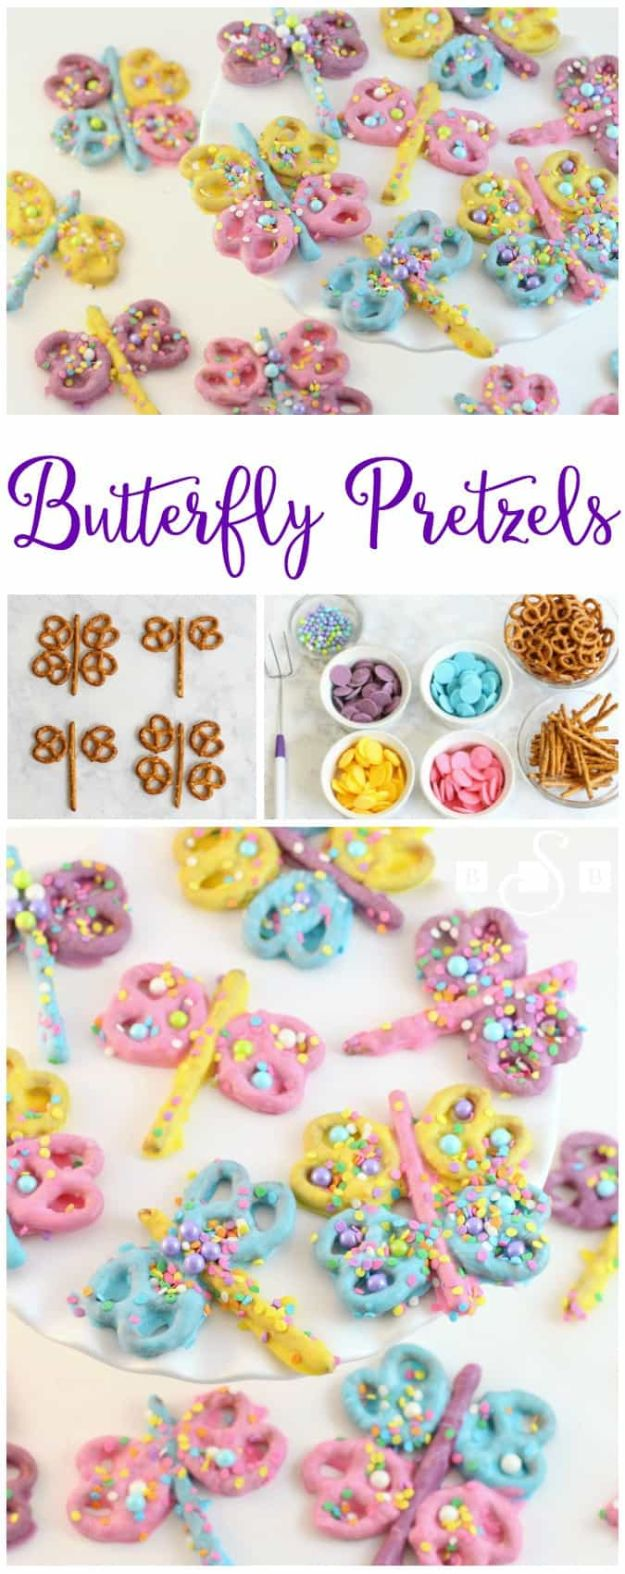 DIY Ideas With Butterflies - Butterfly Pretzels - Cute and Easy DIY Projects for Butterfly Lovers - Wall and Home Decor Projects, Things To Make and Sell on Etsy - Quick Gifts to Make for Friends and Family - Homemade No Sew Projects- Fun Jewelry, Cool Clothes and Accessories http://diyprojectsforteens.com/diy-ideas-butterflies